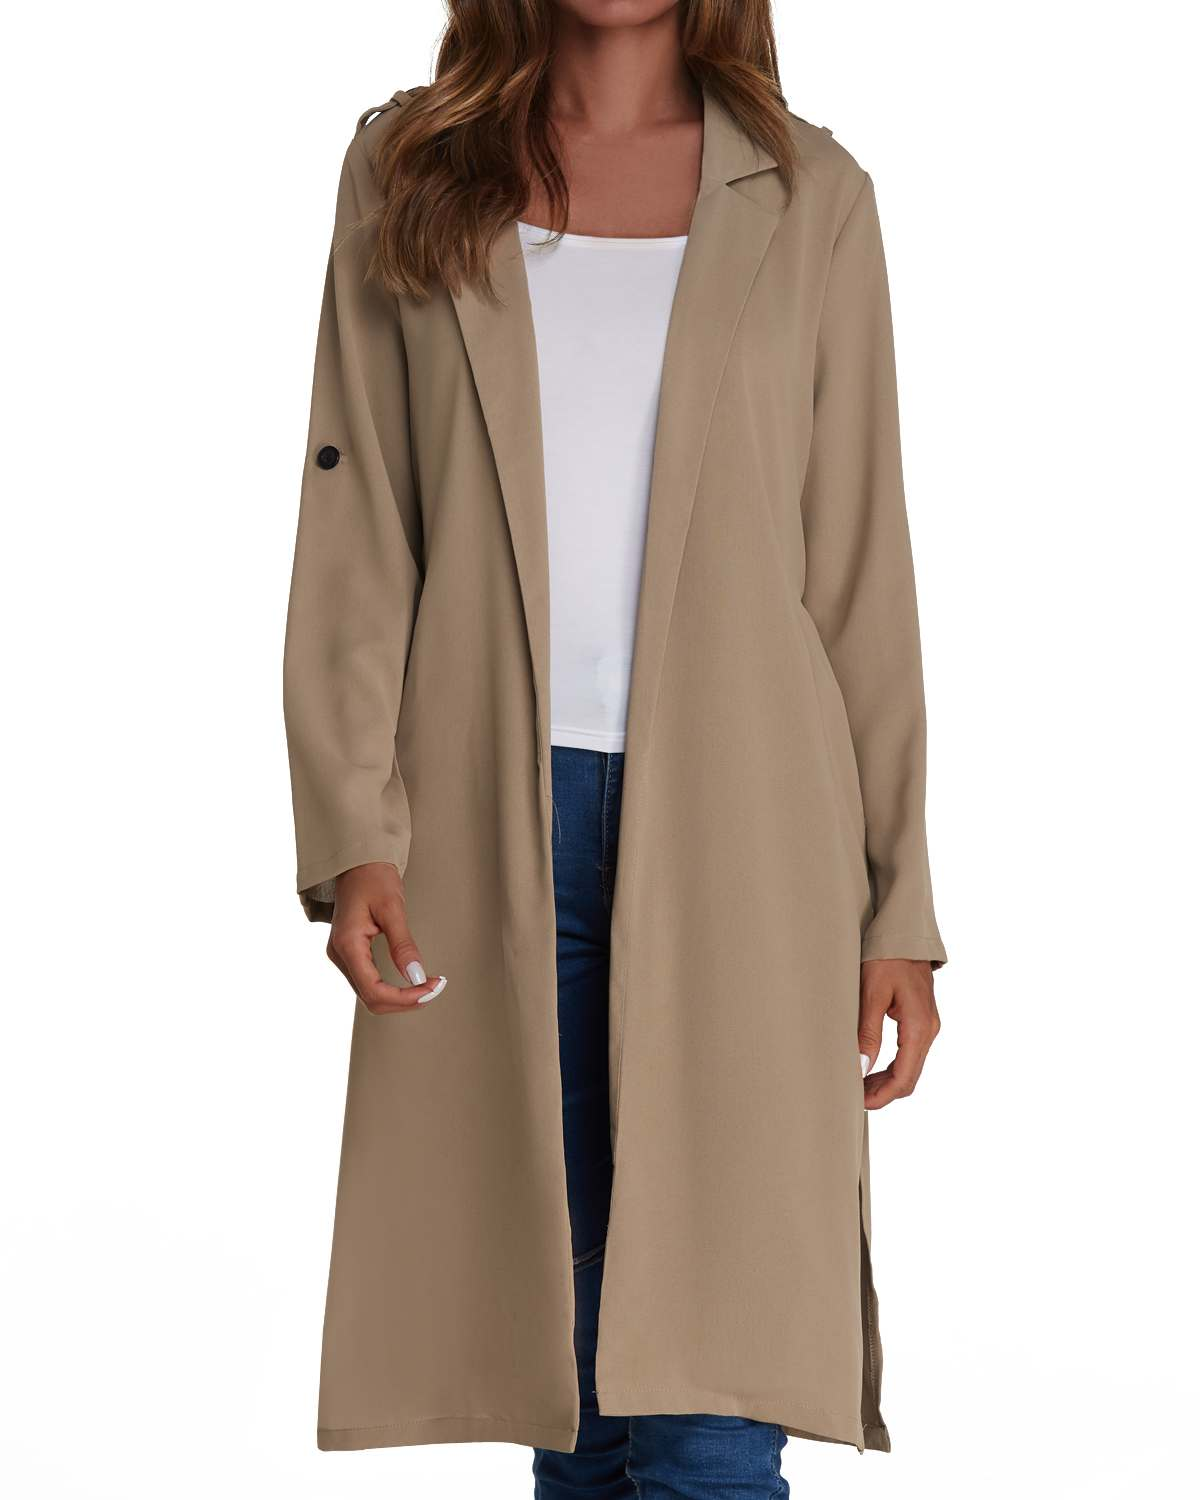 2019 ZANZEA Women Coats Spring Autumn Solid Full Sleeve Outerwear Long   Trench   Coat Casual Loose Coat Cardigan Overcoat